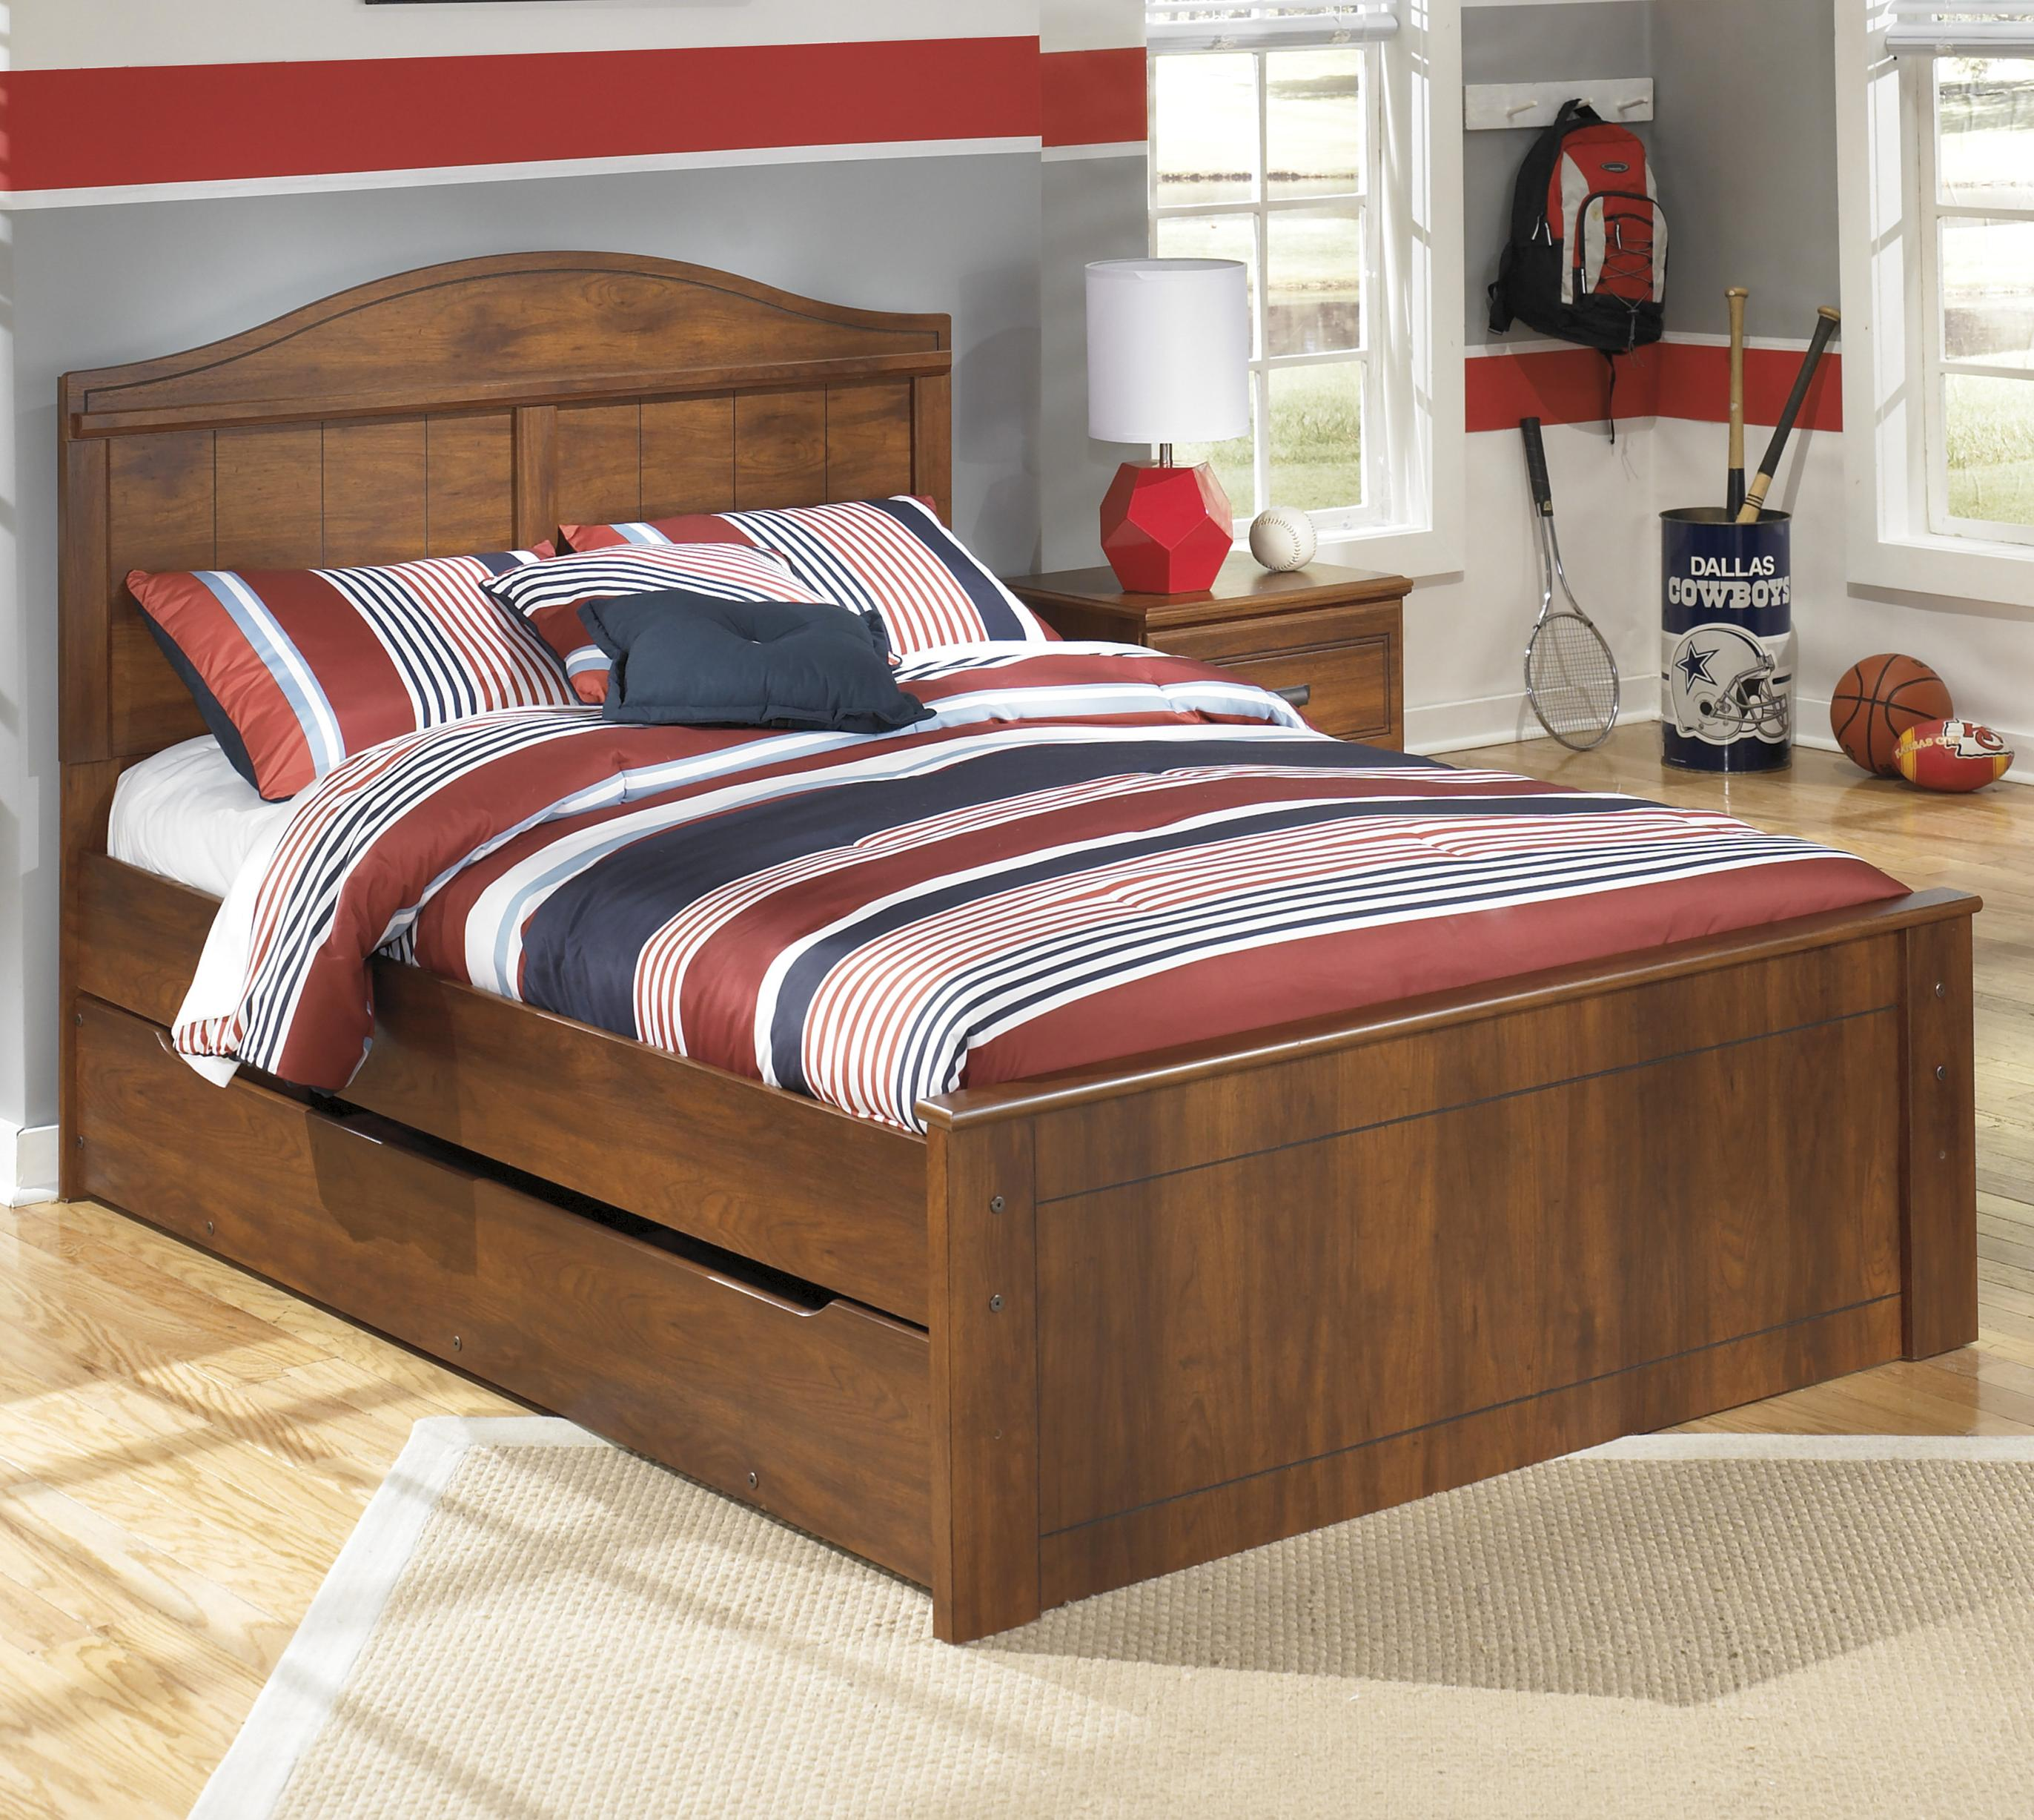 Full Panel Bed with Trundle Storage Unit